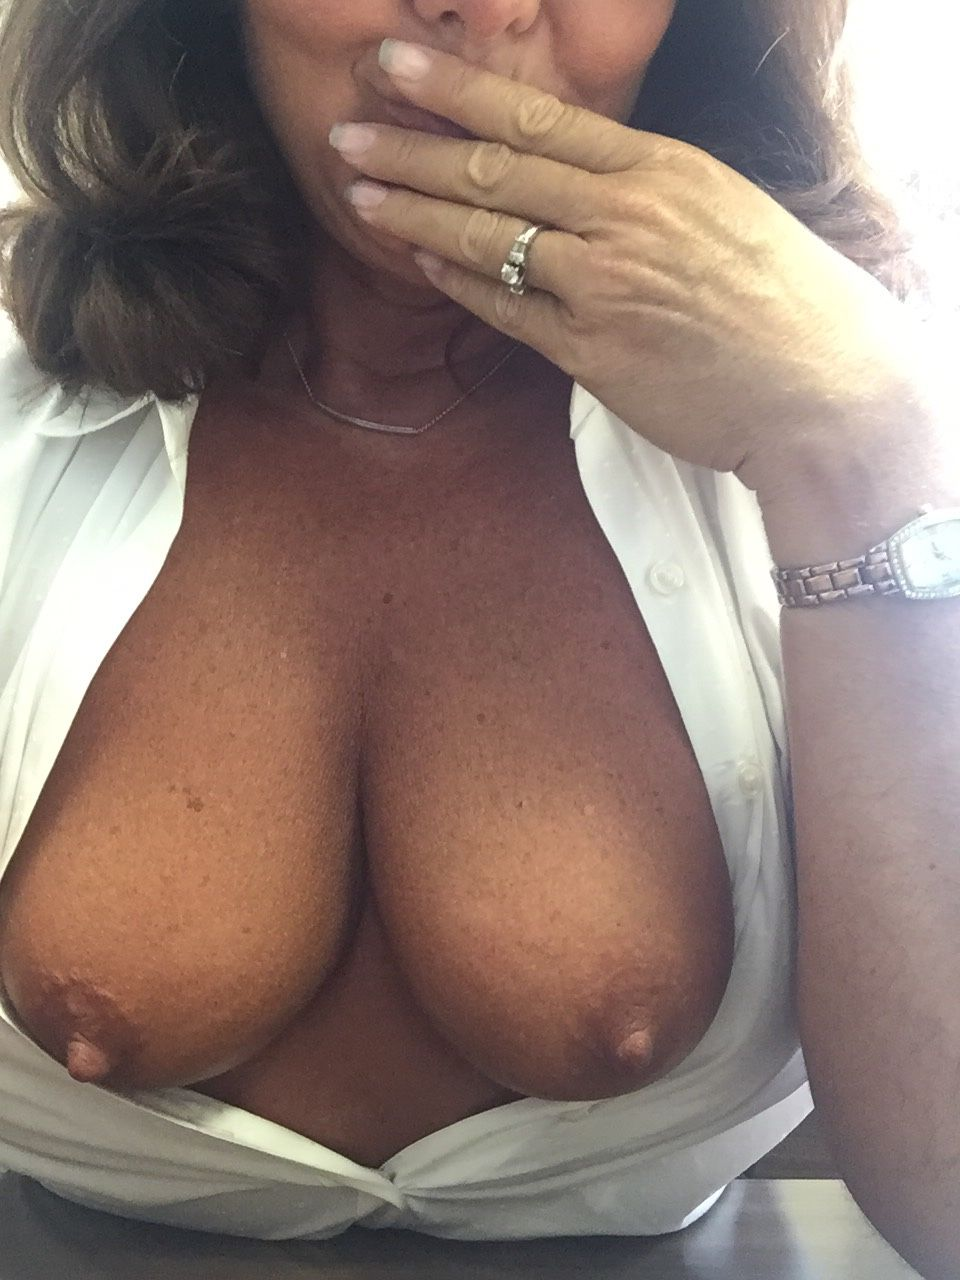 [Amateur MILF] Topless at work!